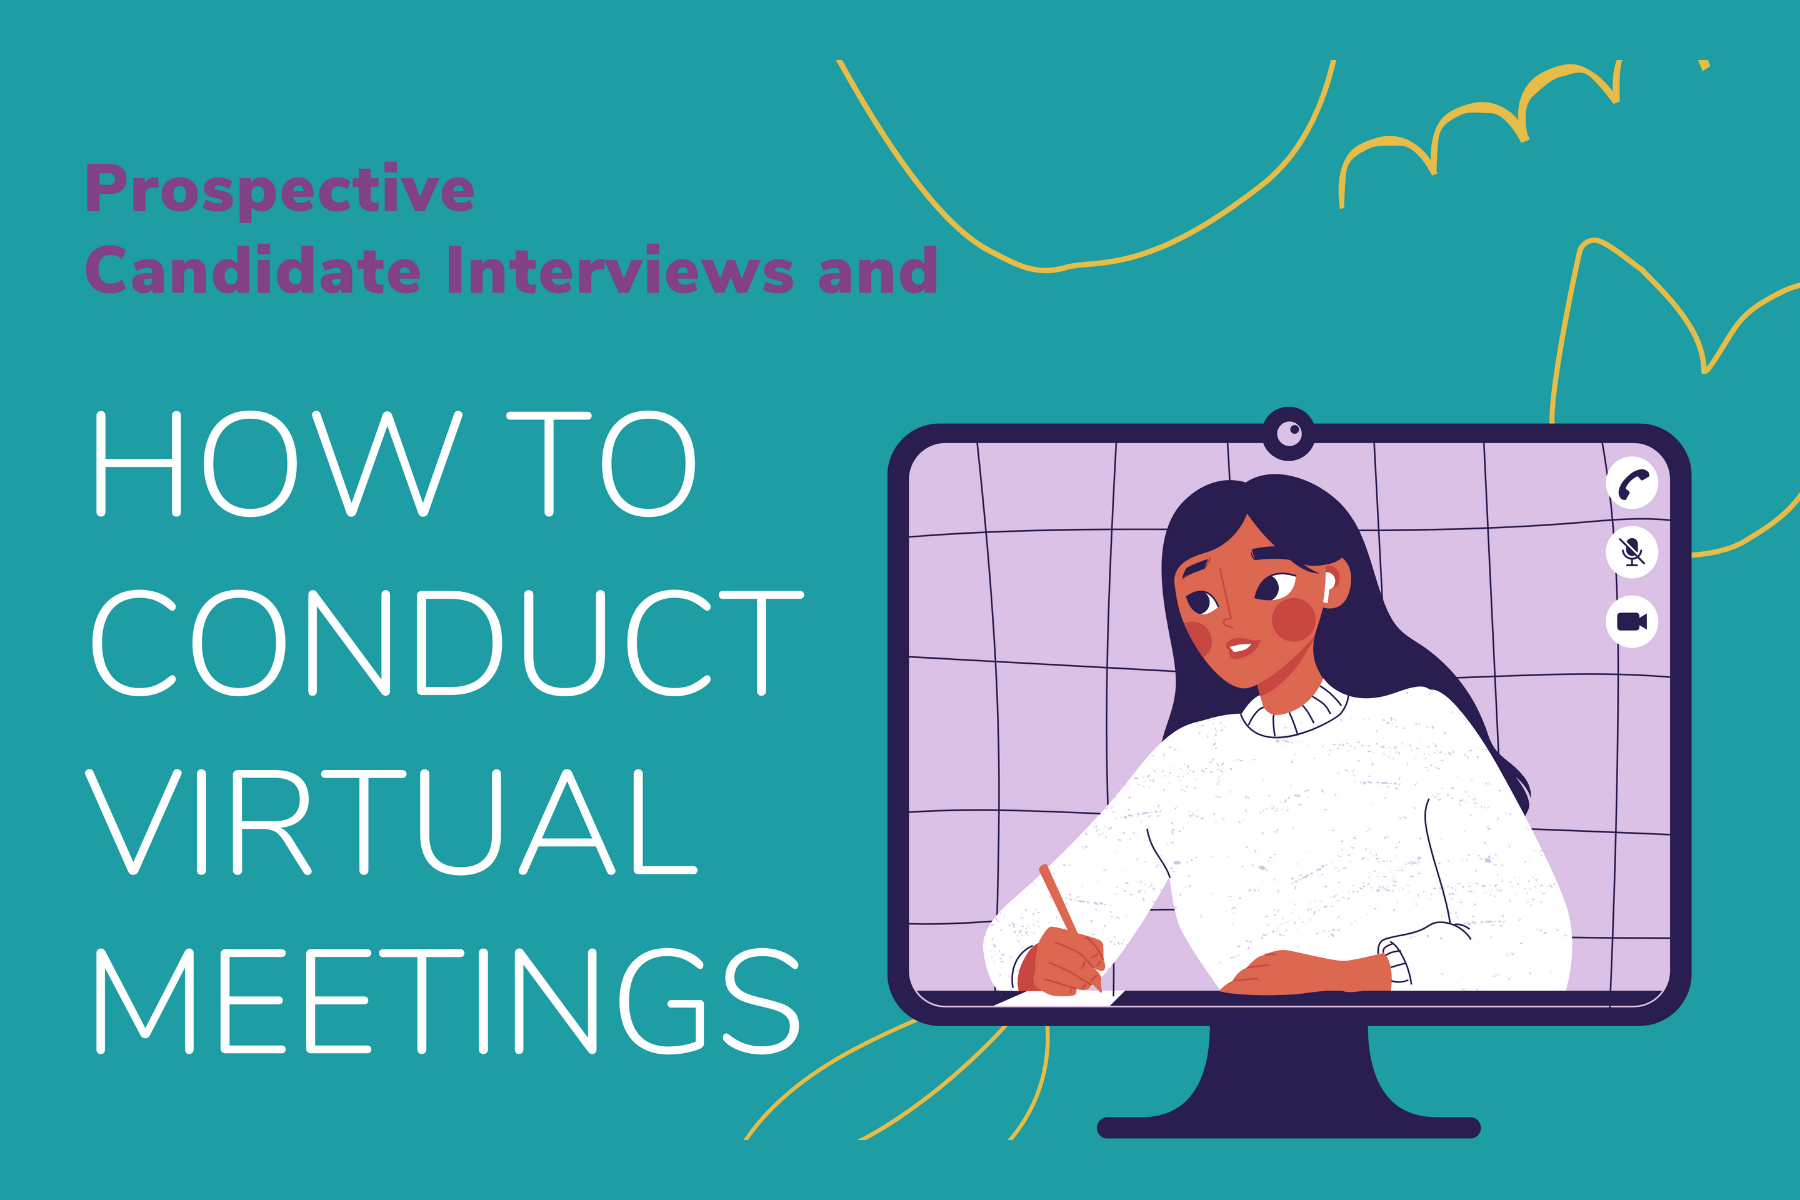 Prospective Candidate Interviews and How to Conduct them Virtually